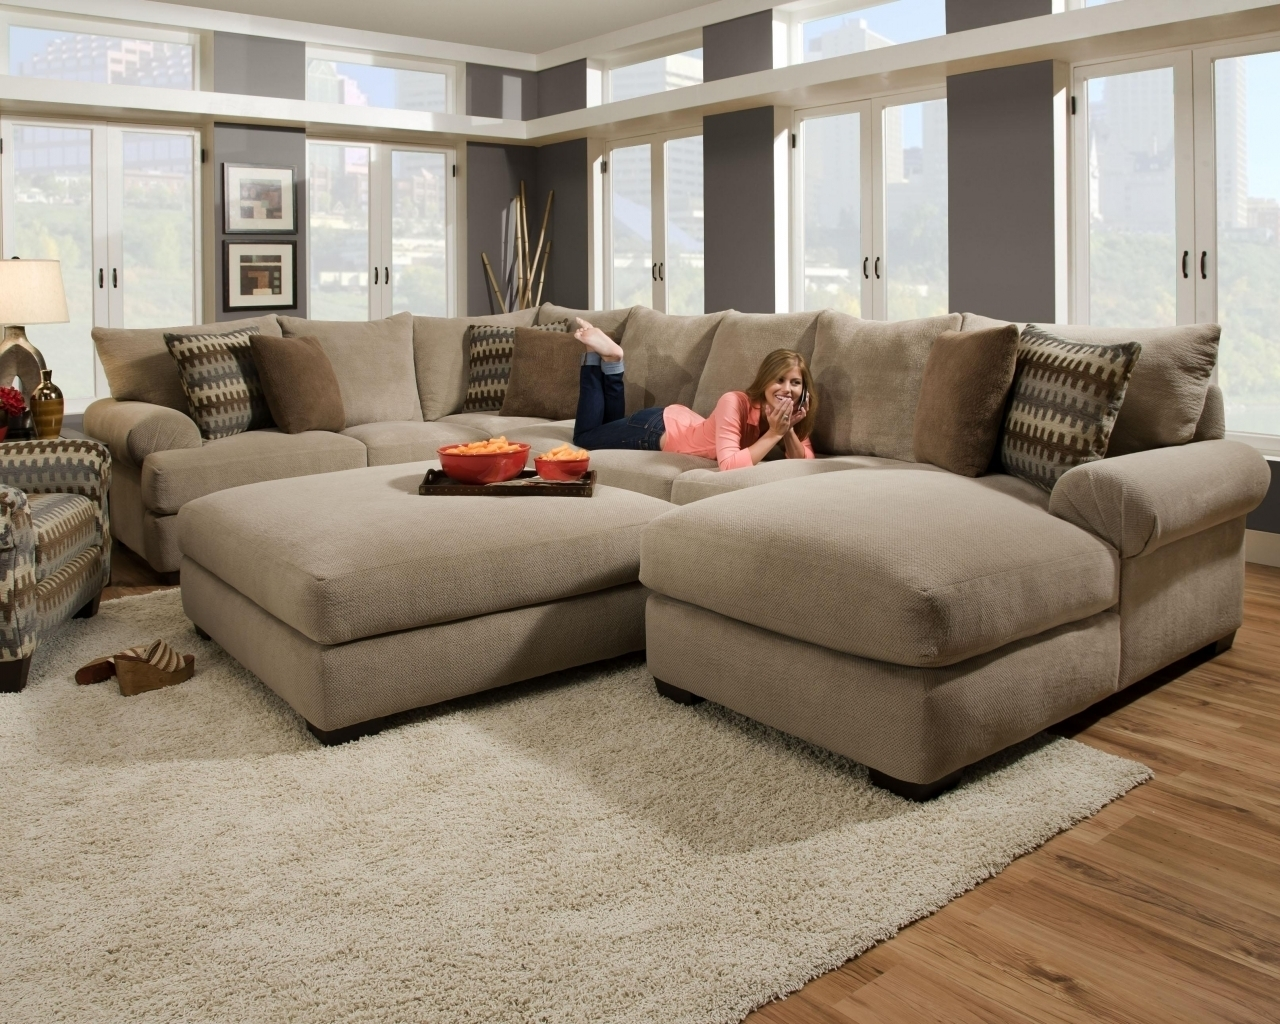 Amazing Sectional Sofa With Oversized Ottoman 59 For Your Best within Quality Sectional Sofas